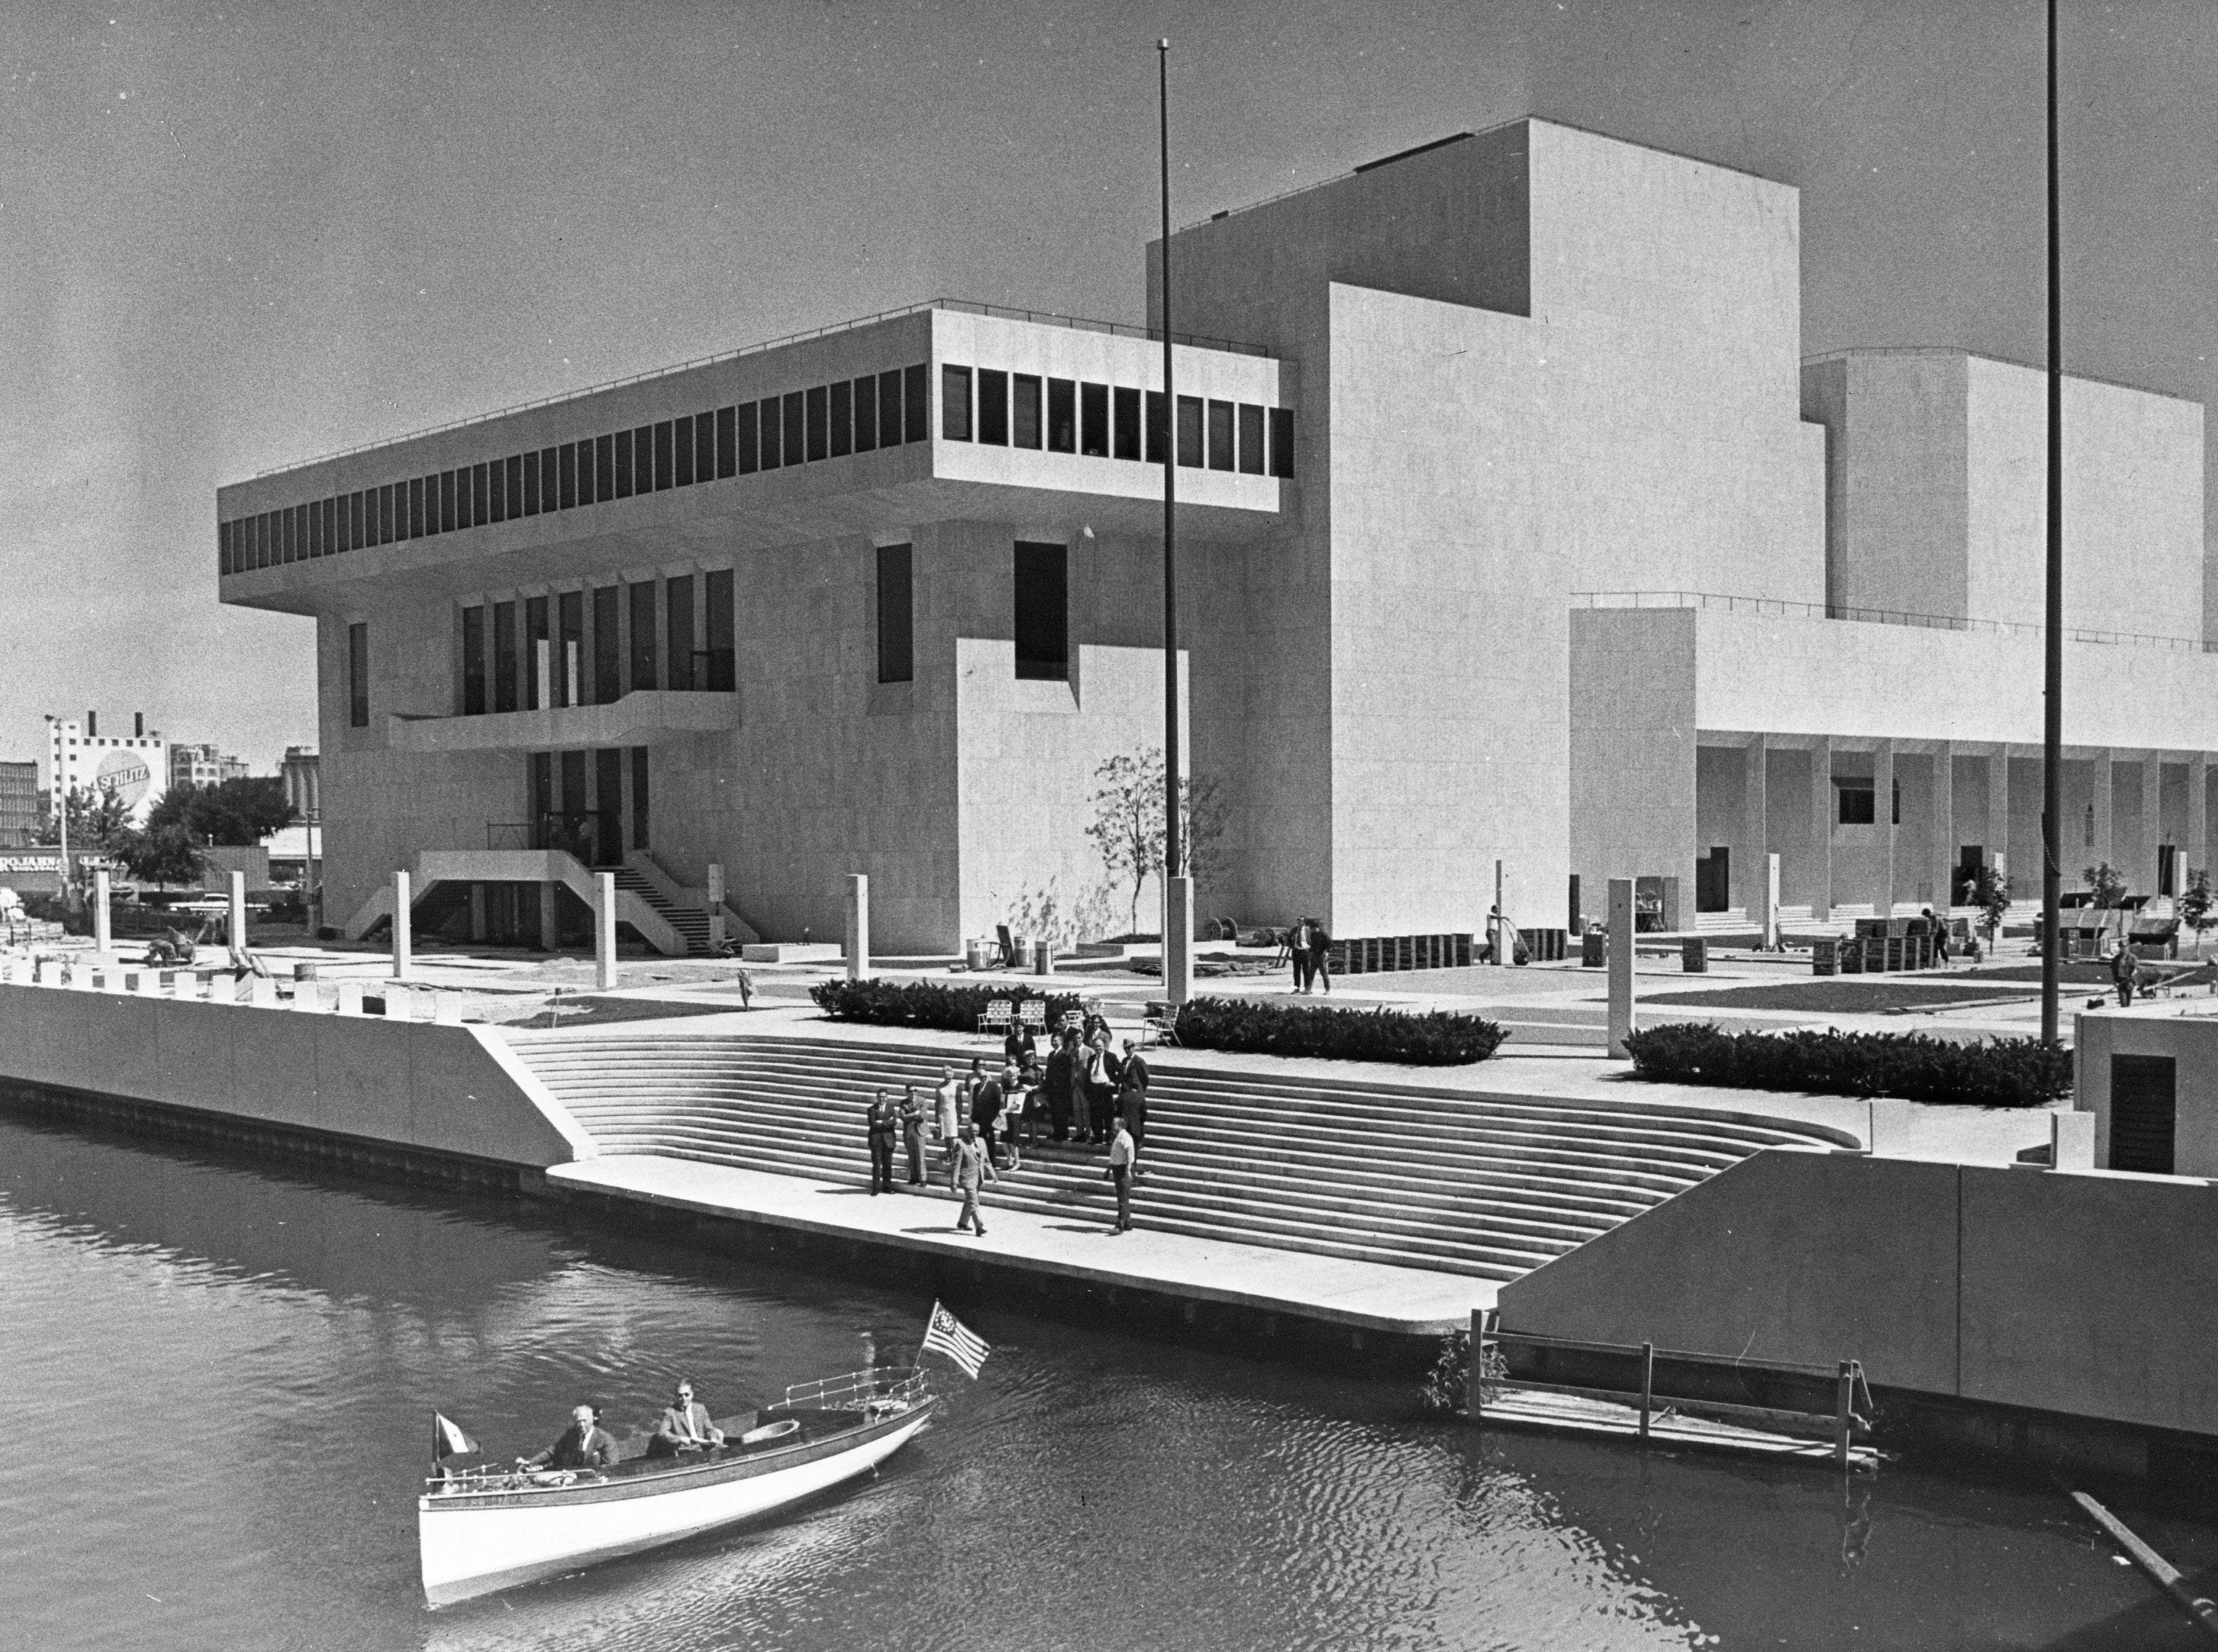 """Copy of a photo of the new Milwaukee Performing Arts Center (now known as the Marcus Center for the Performing Arts) or PAC at 929 N. Water St. Construction began on June 27, 1966. This photo was in the Aug. 19 edition of the Journal with the caption """"Landing Dedicated - Officials gathered Tuesday morning to watch as the first boat officially docked at Quarles landing at the Performing Arts Center. Riding in the boat were Atty. Louis Quarles (hidden) and Richard R. Teschner, president of the War Memorial Development Center. The landing, a gift from Quarles, and the Cudahy Memorial flag plaza which borders it, were dedicated at the ceremony. The plaza is the gift of the Patrick Cudahy Foundation. The boat was owned and piloted by C. R. Conlee.""""  Date is 8/19/1969. Neg. #69586  exterior, building, music, performance, stage, theater, Uihlein Hall, Todd Wehr hall, Peck Pavilion."""